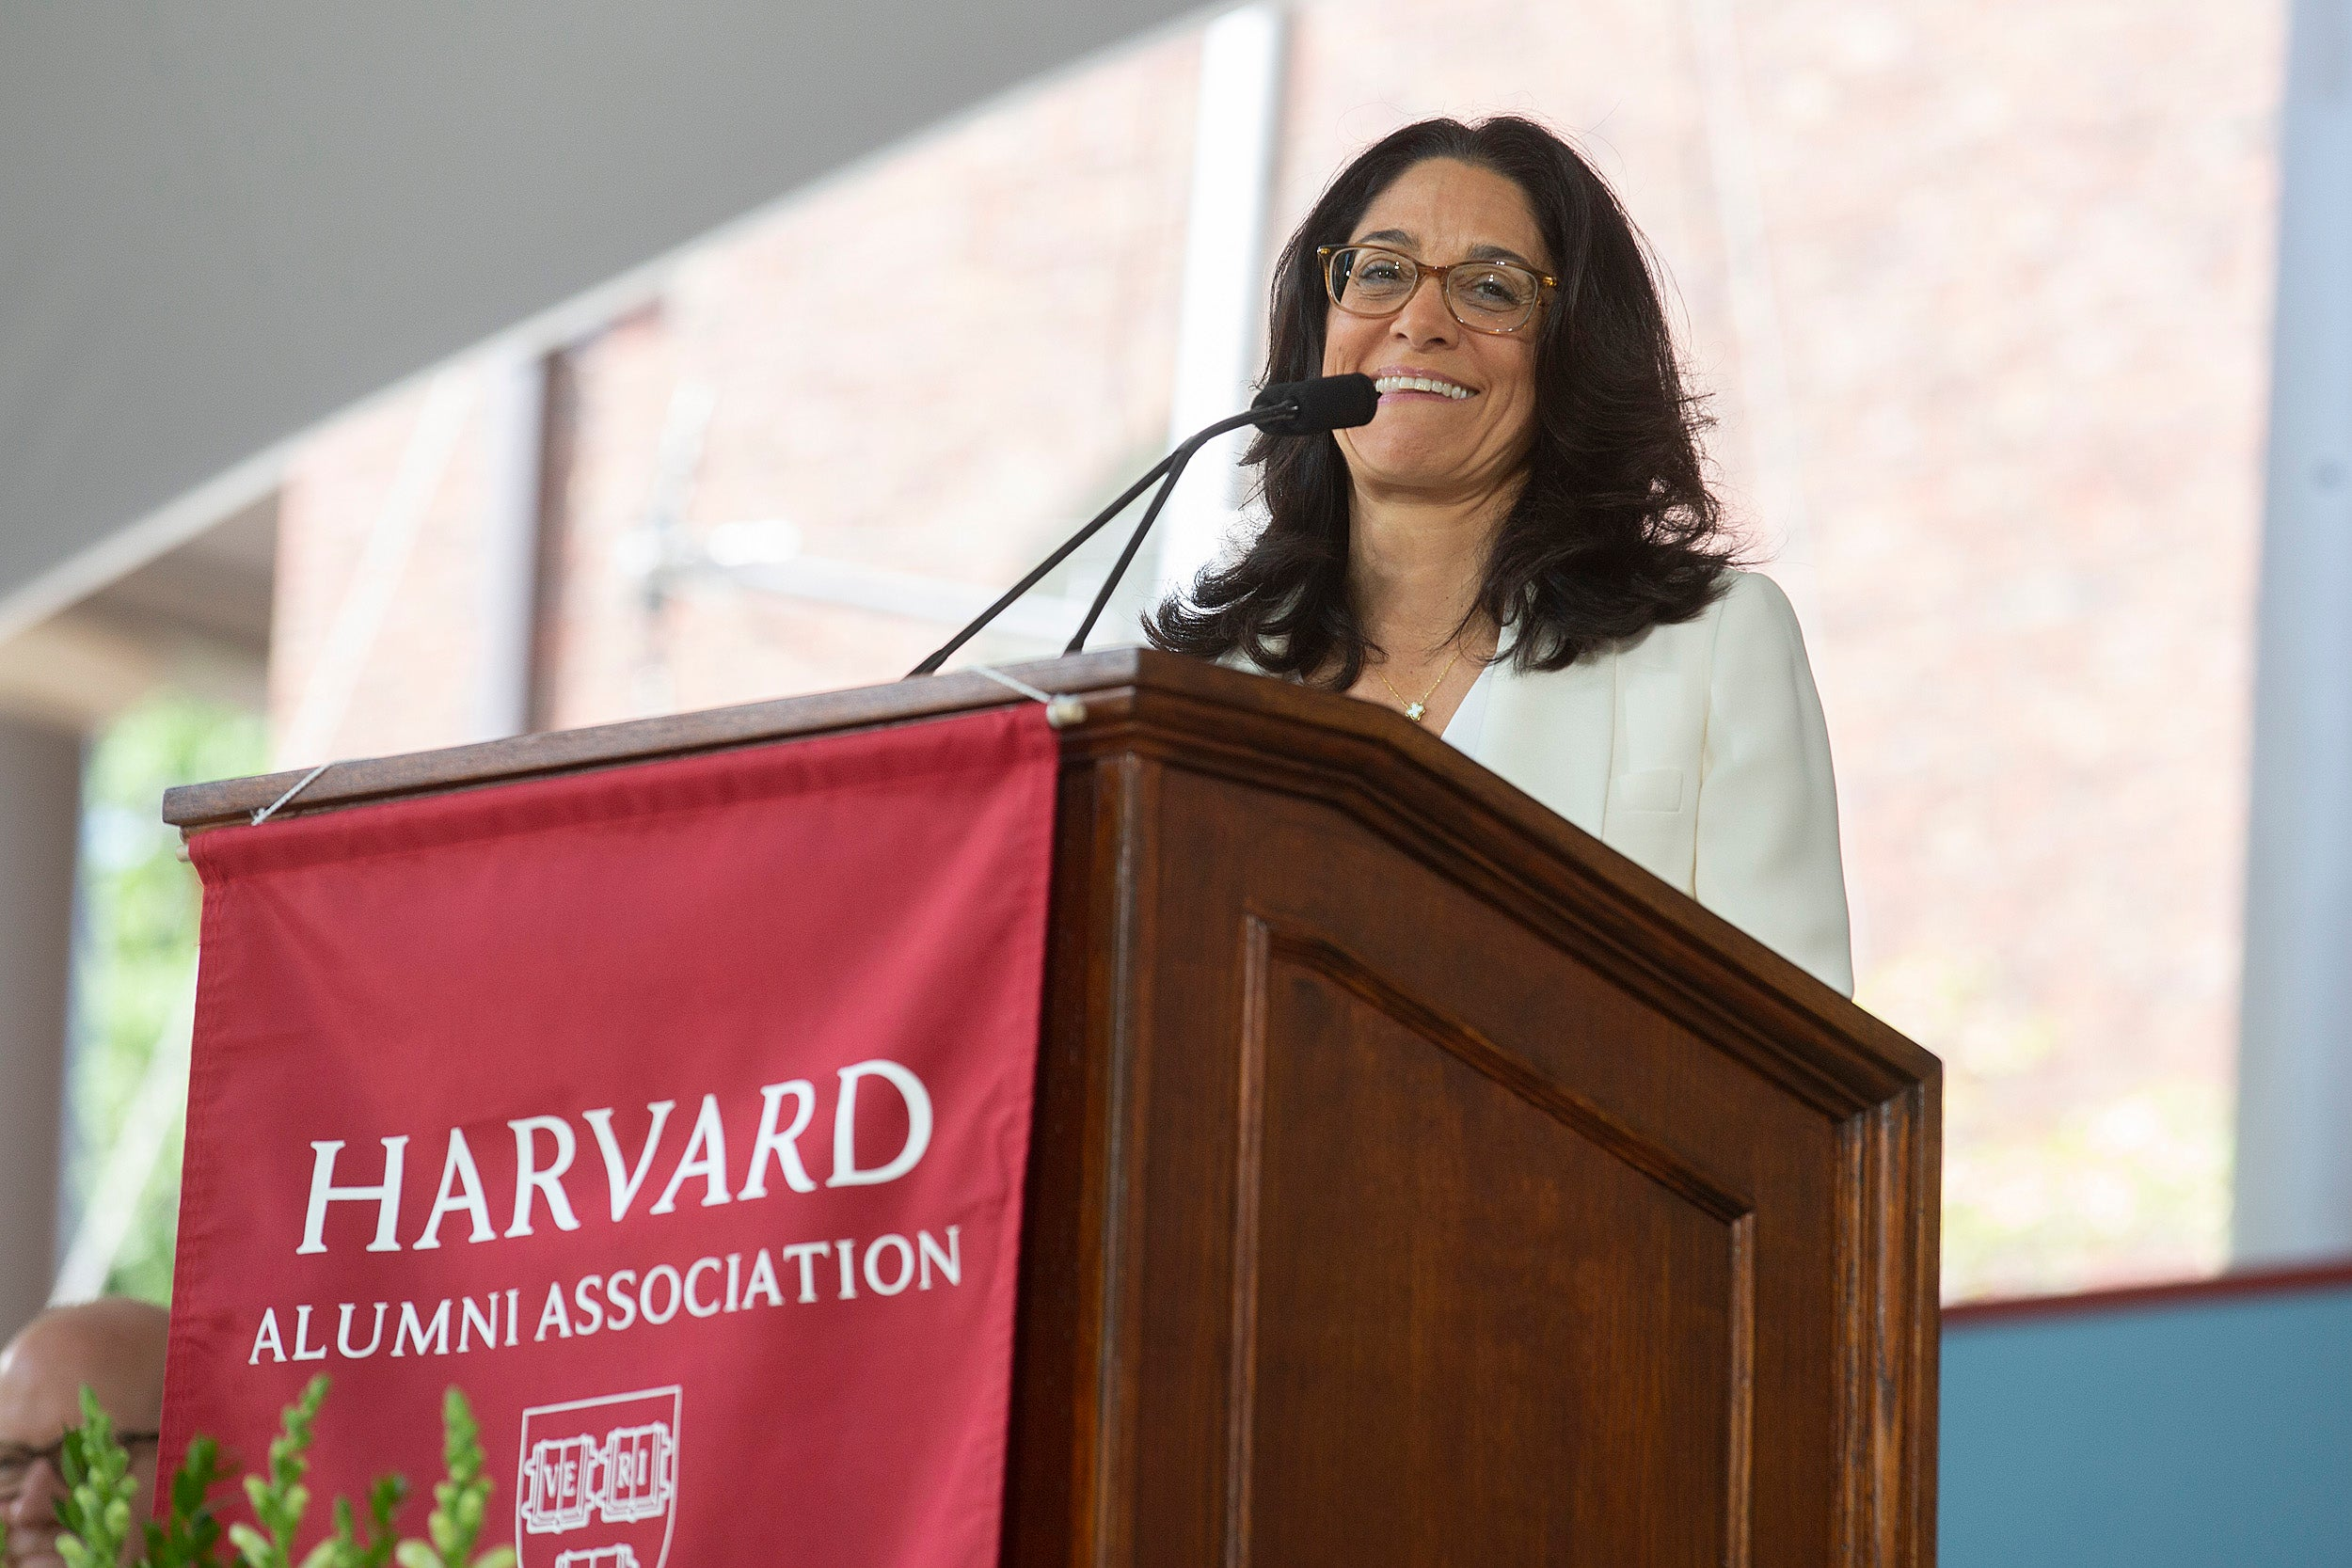 Harvard Alumni Association President Susan Novick '85 at the Afternoon Program. The HAA holds its annual meeting following the University's Commencement.